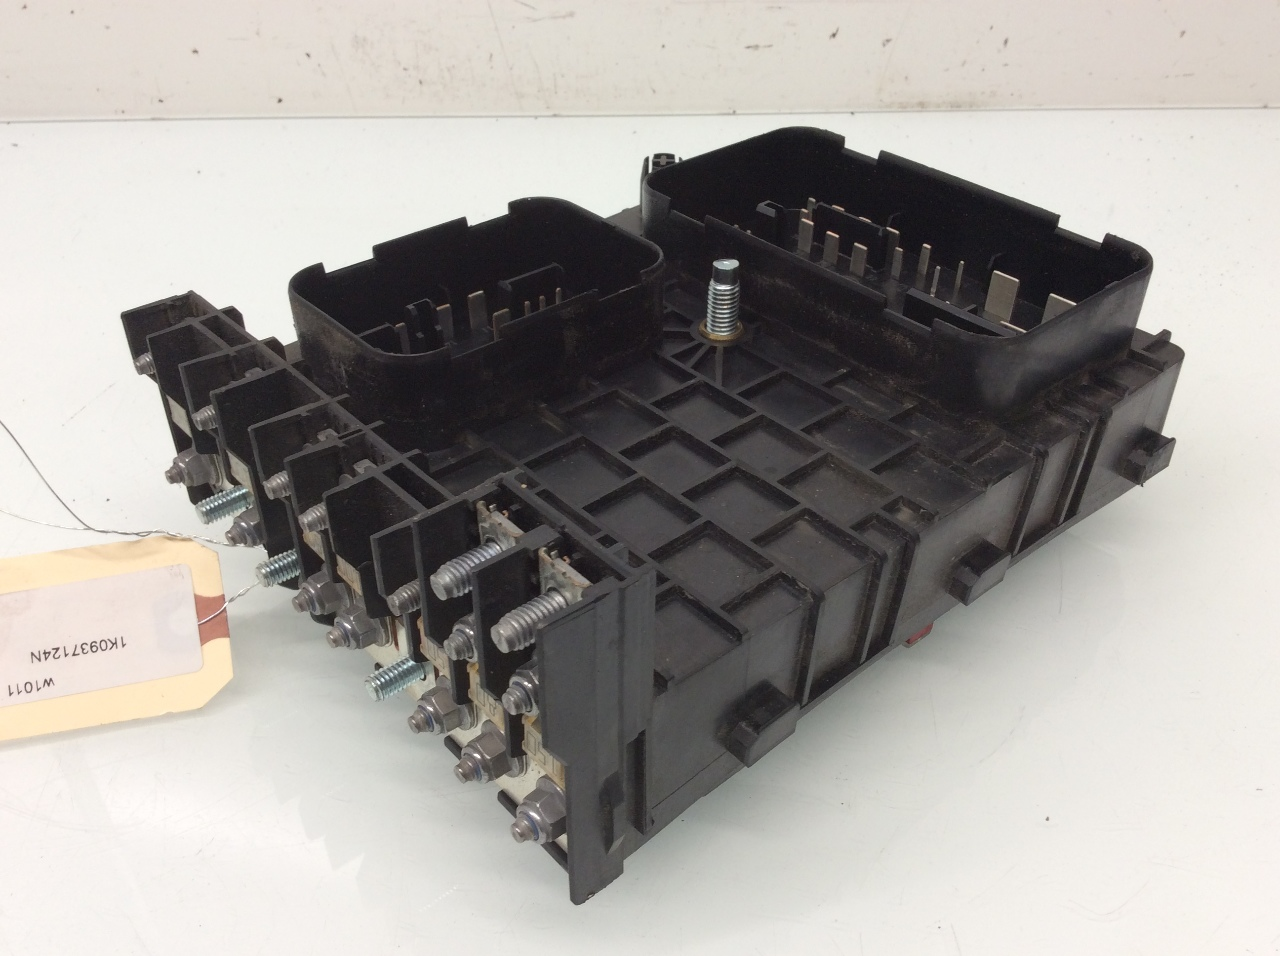 Volkswagen passat engine compartment